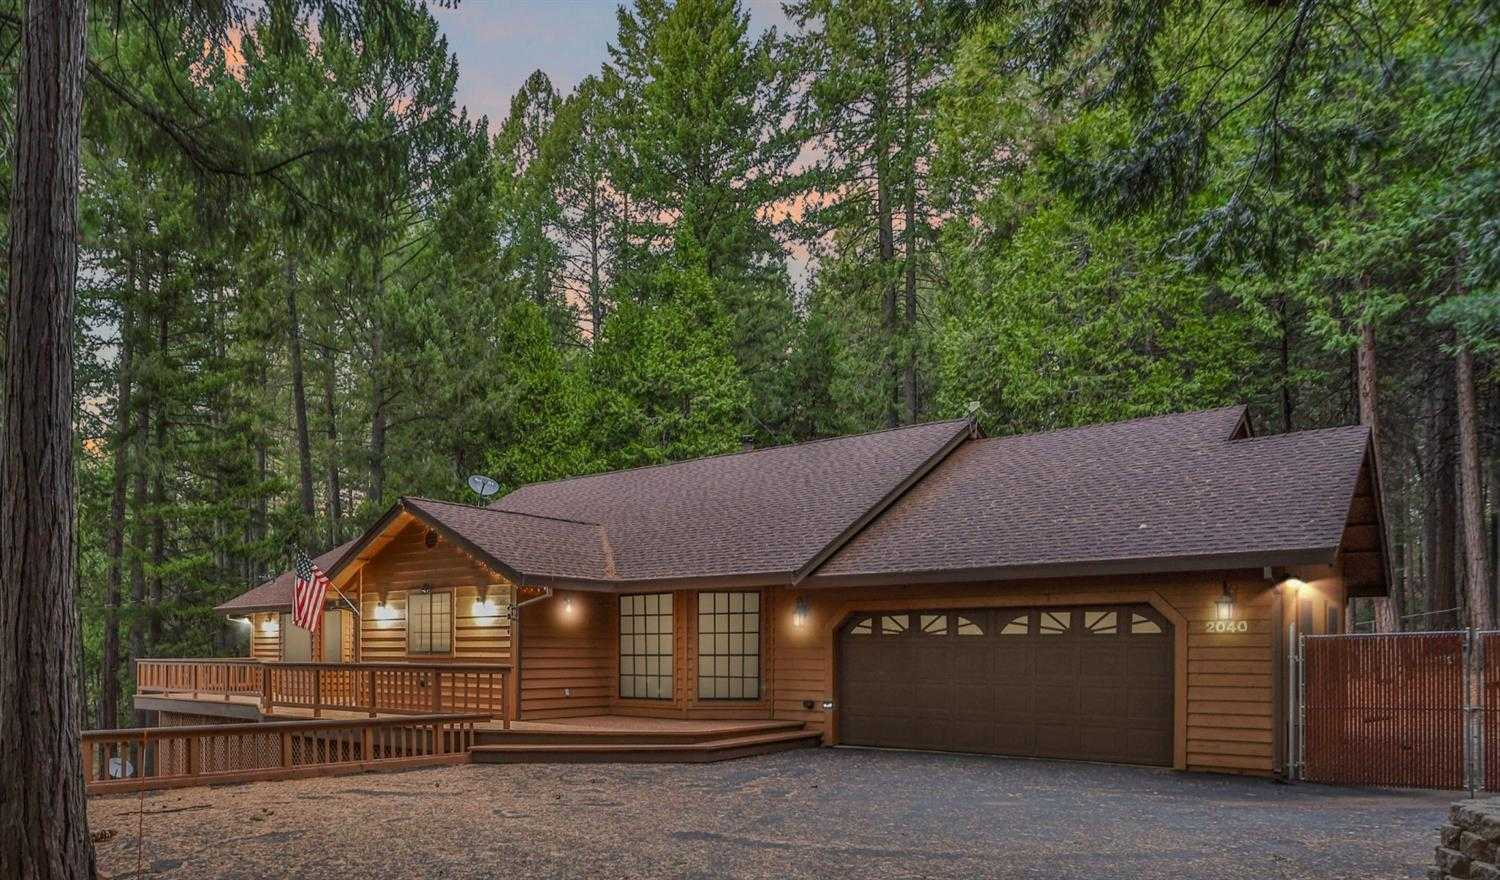 $650,000 - 4Br/3Ba -  for Sale in Pollock Pines